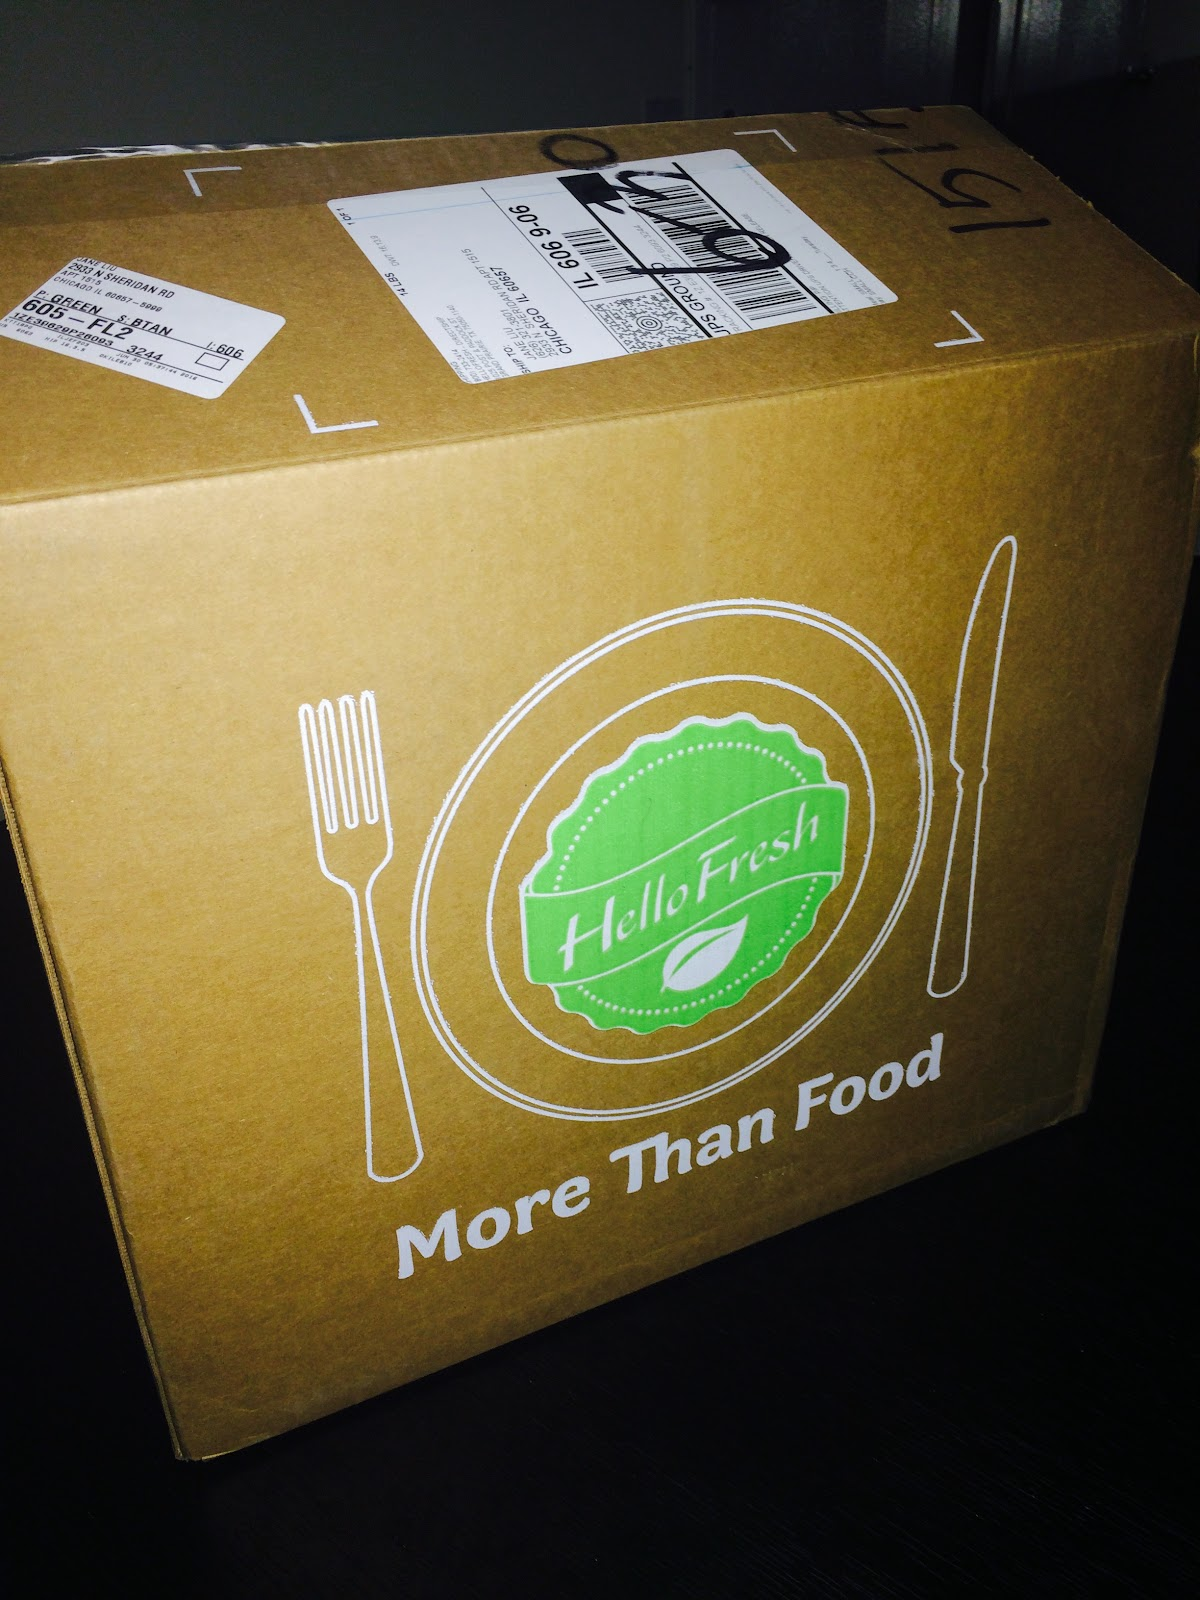 Blue apron podcast code - 4 Receive Your Box In The Mail Based On The Delivery Date You Chose Caution Heavy Af May Hurt Your Self Esteem